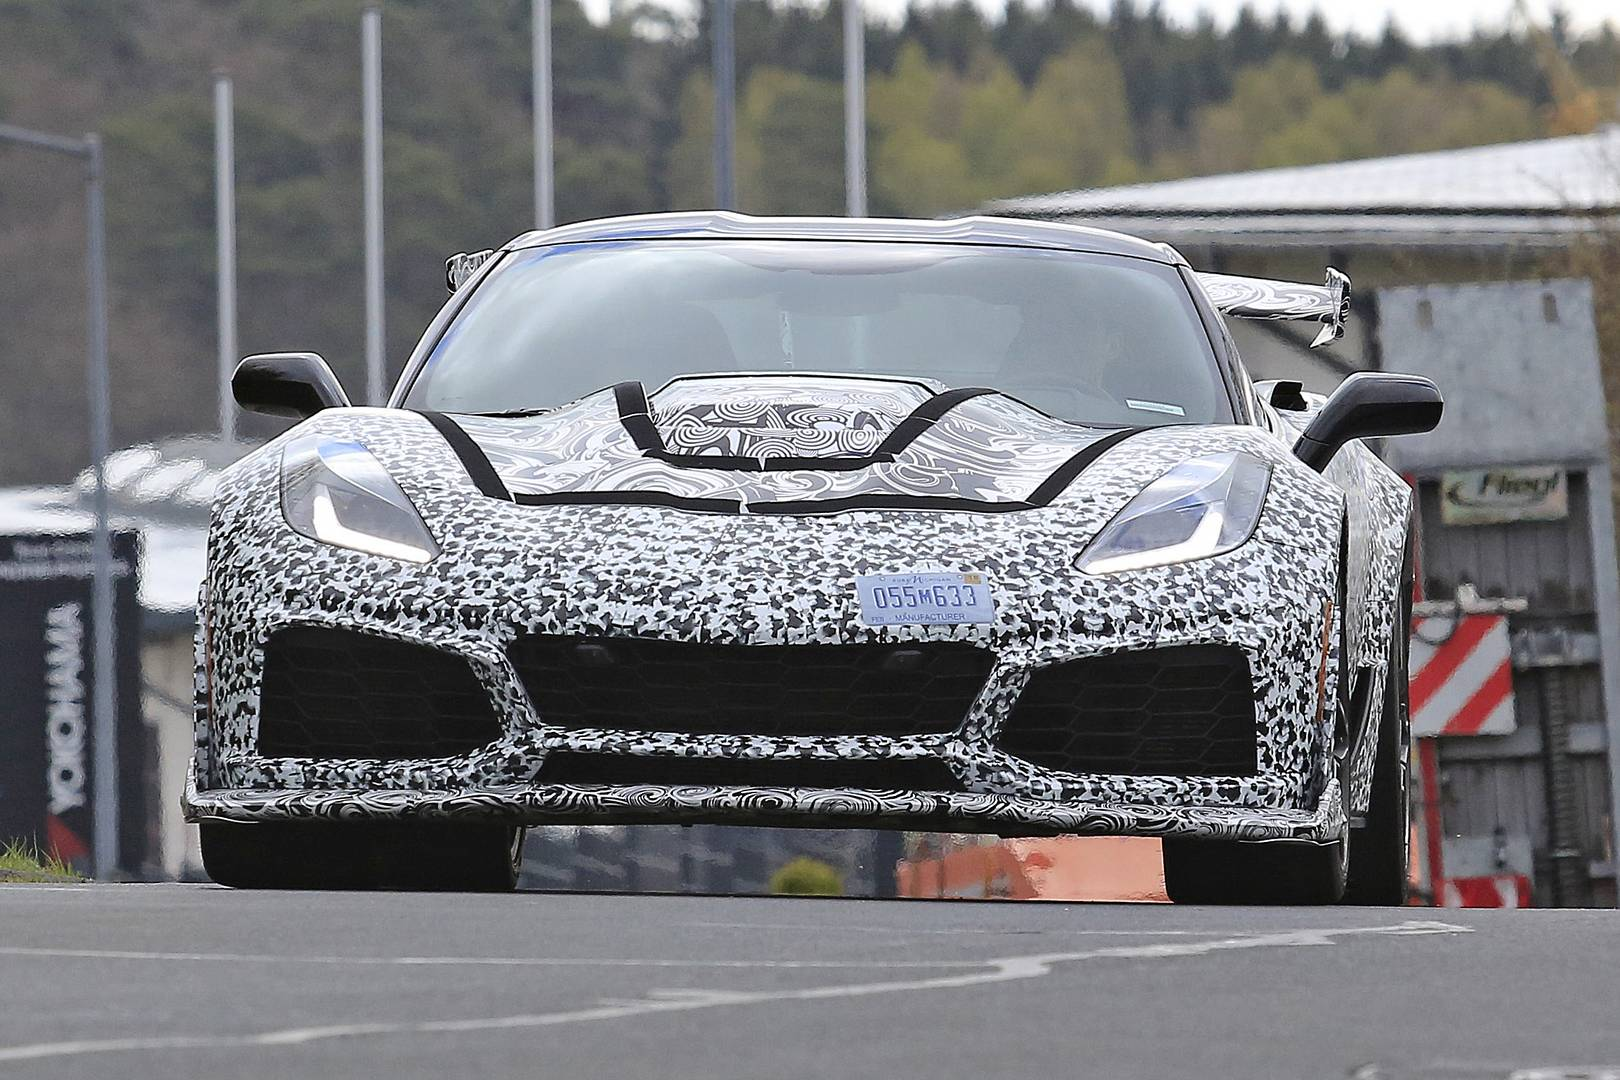 2018 Corvette ZR1 Newest Spy Shots - GTspirit